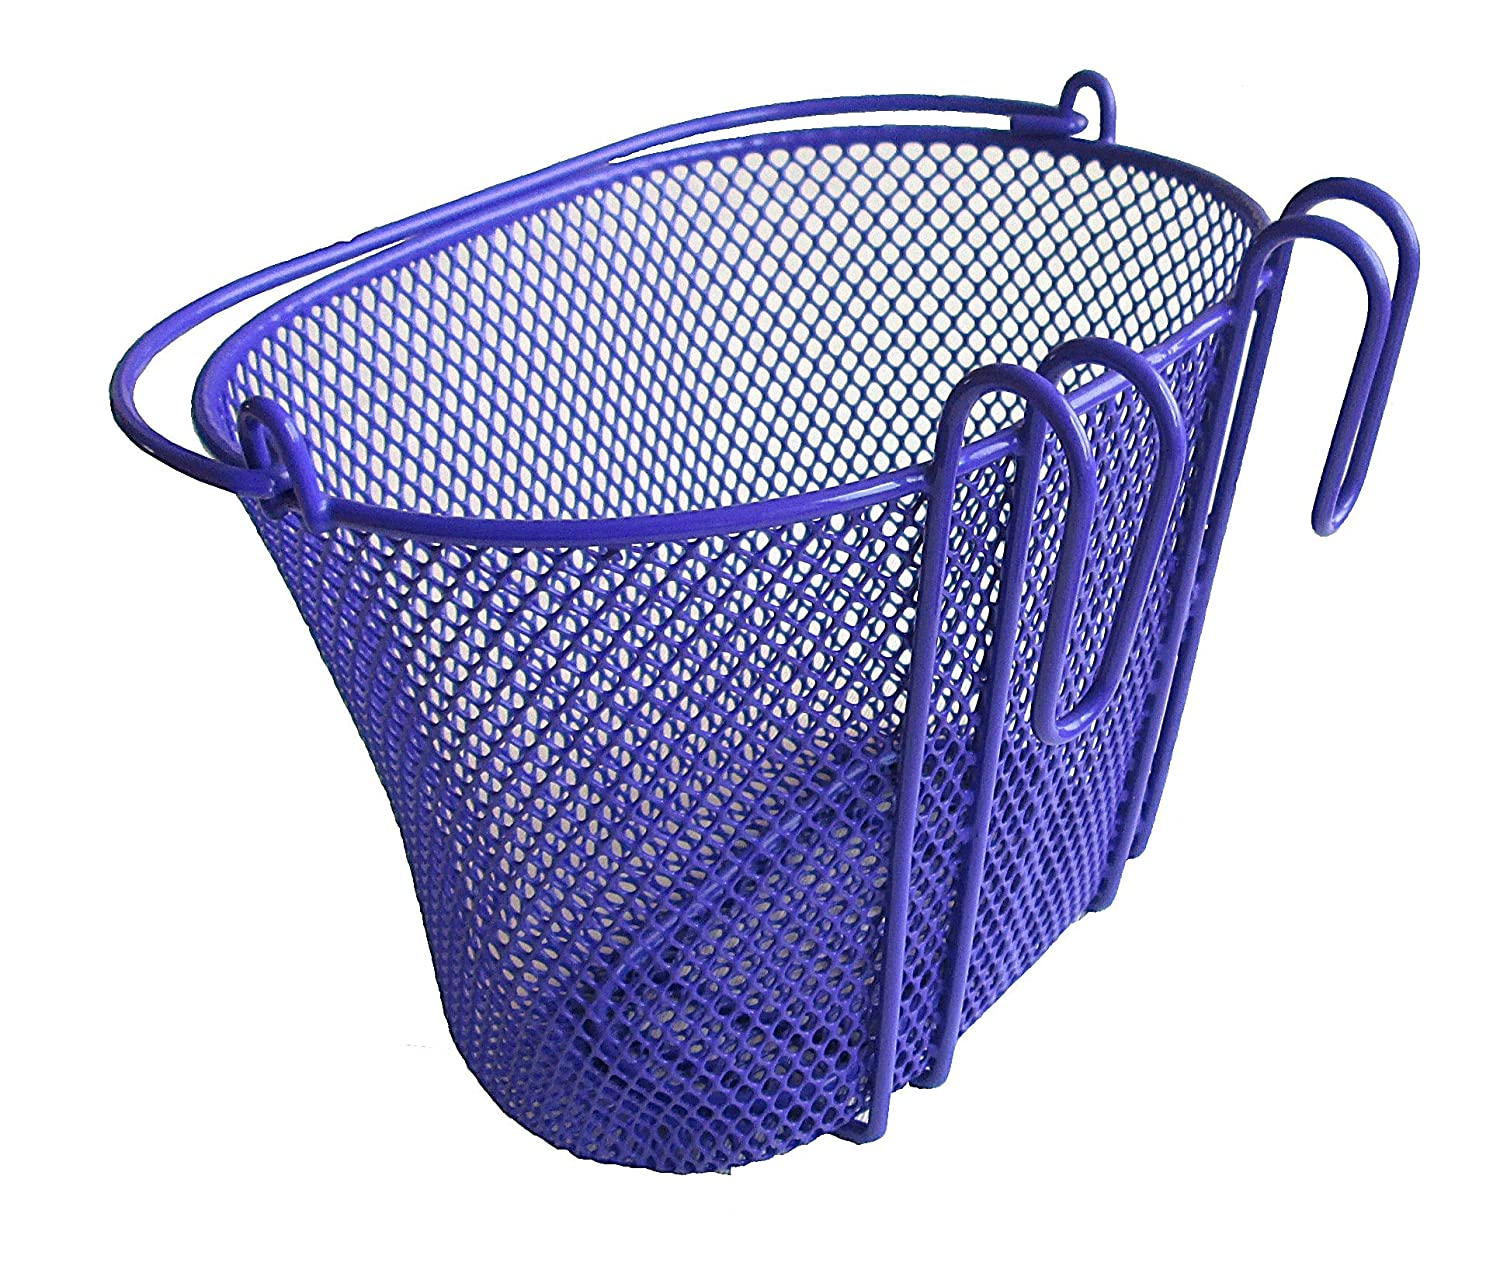 basket bike baskets with hook purple front removable children wire mesh small ebay. Black Bedroom Furniture Sets. Home Design Ideas